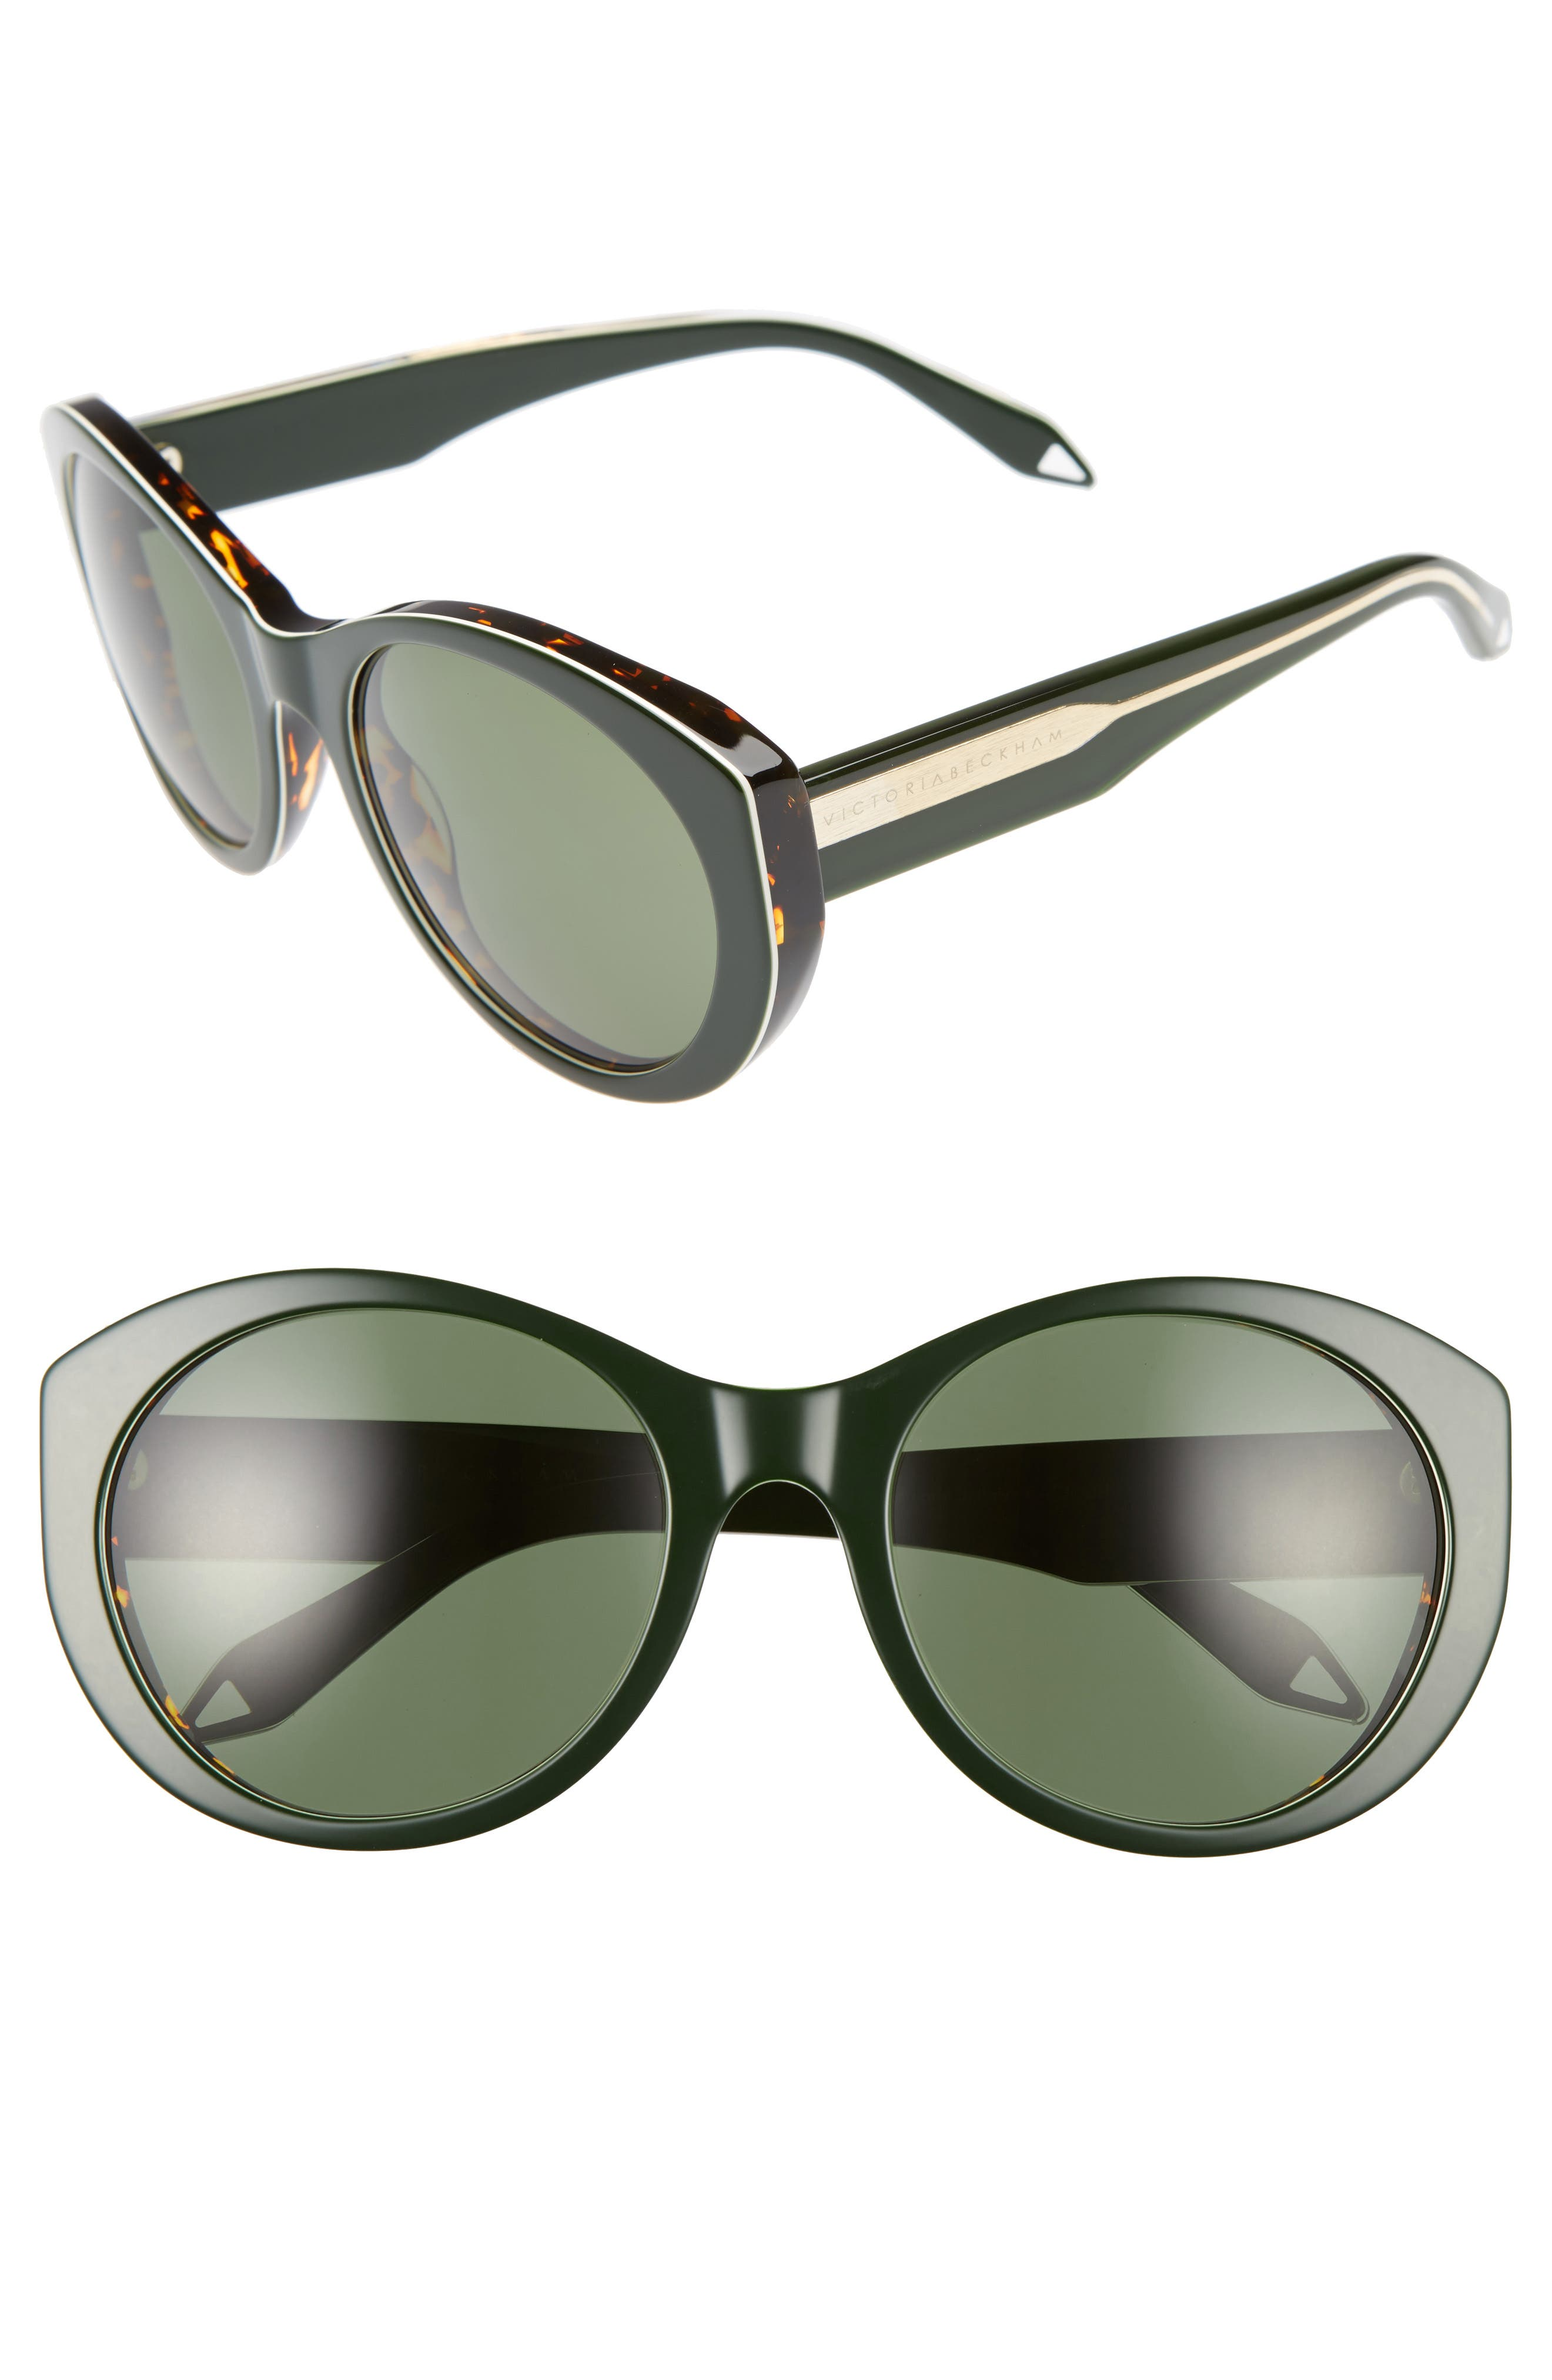 Fine Oval 59mm Sunglasses,                         Main,                         color, Green/ Grey